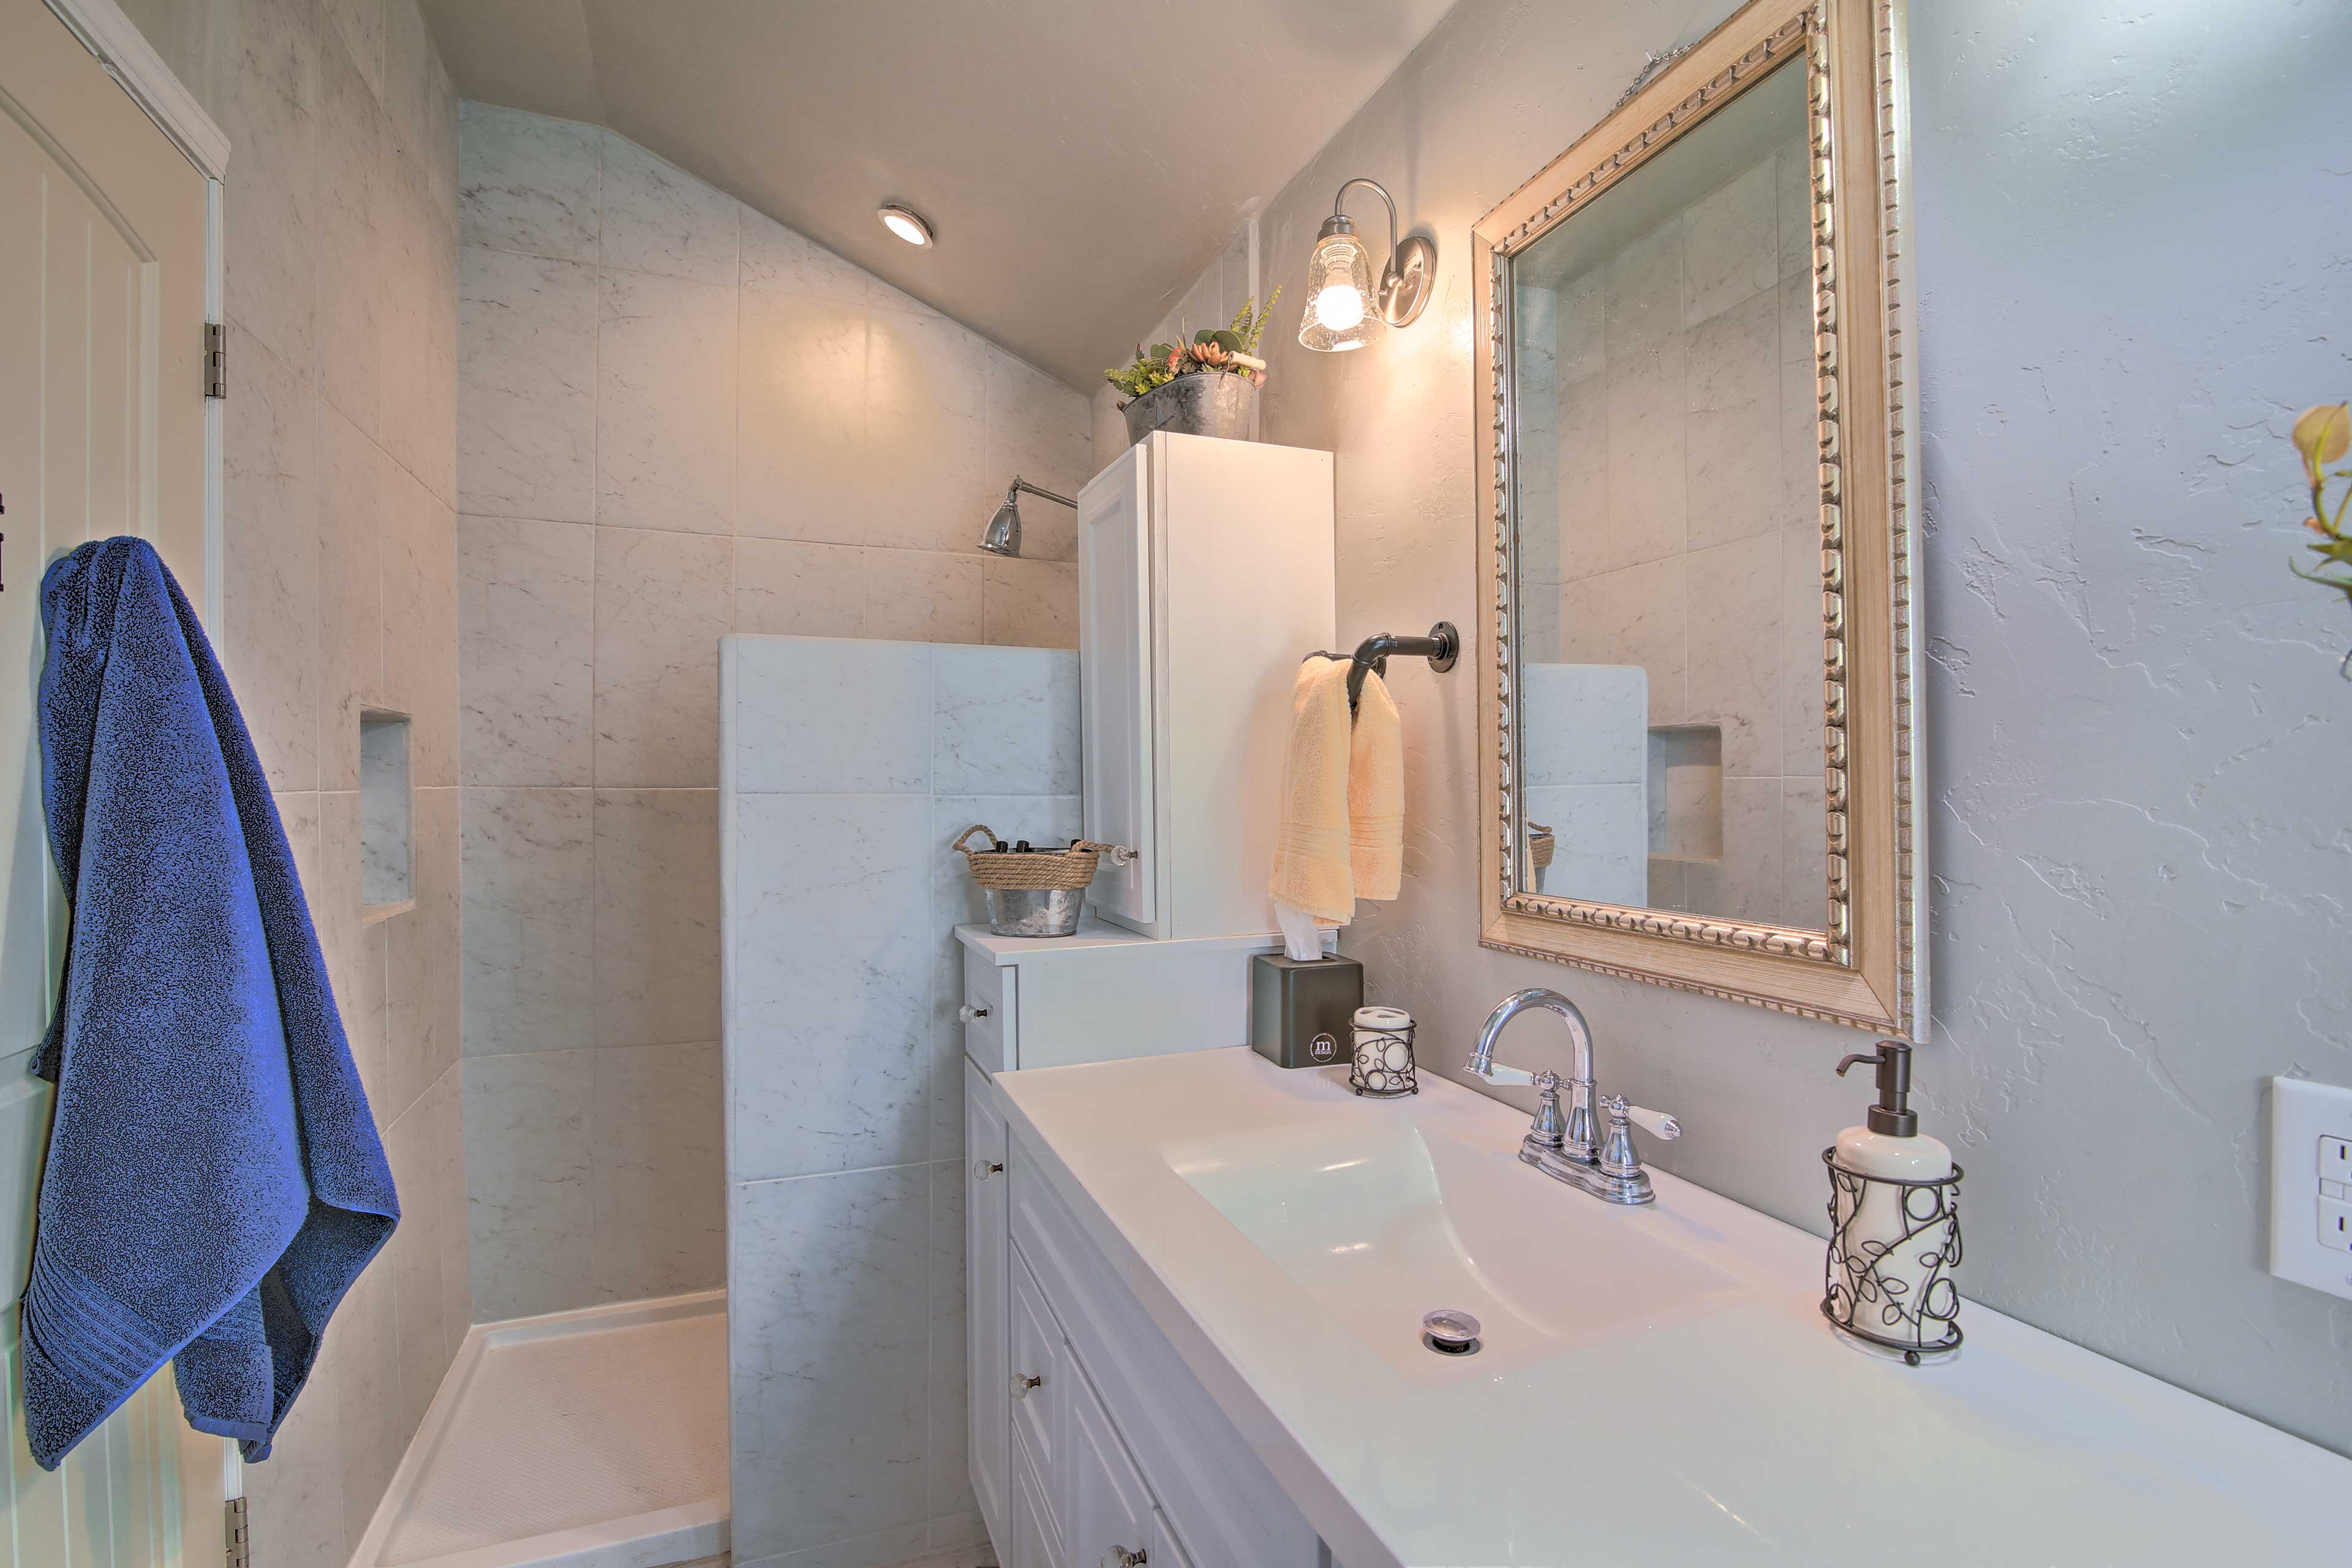 Step into the walk-in shower with stylish, white-granite tiling!